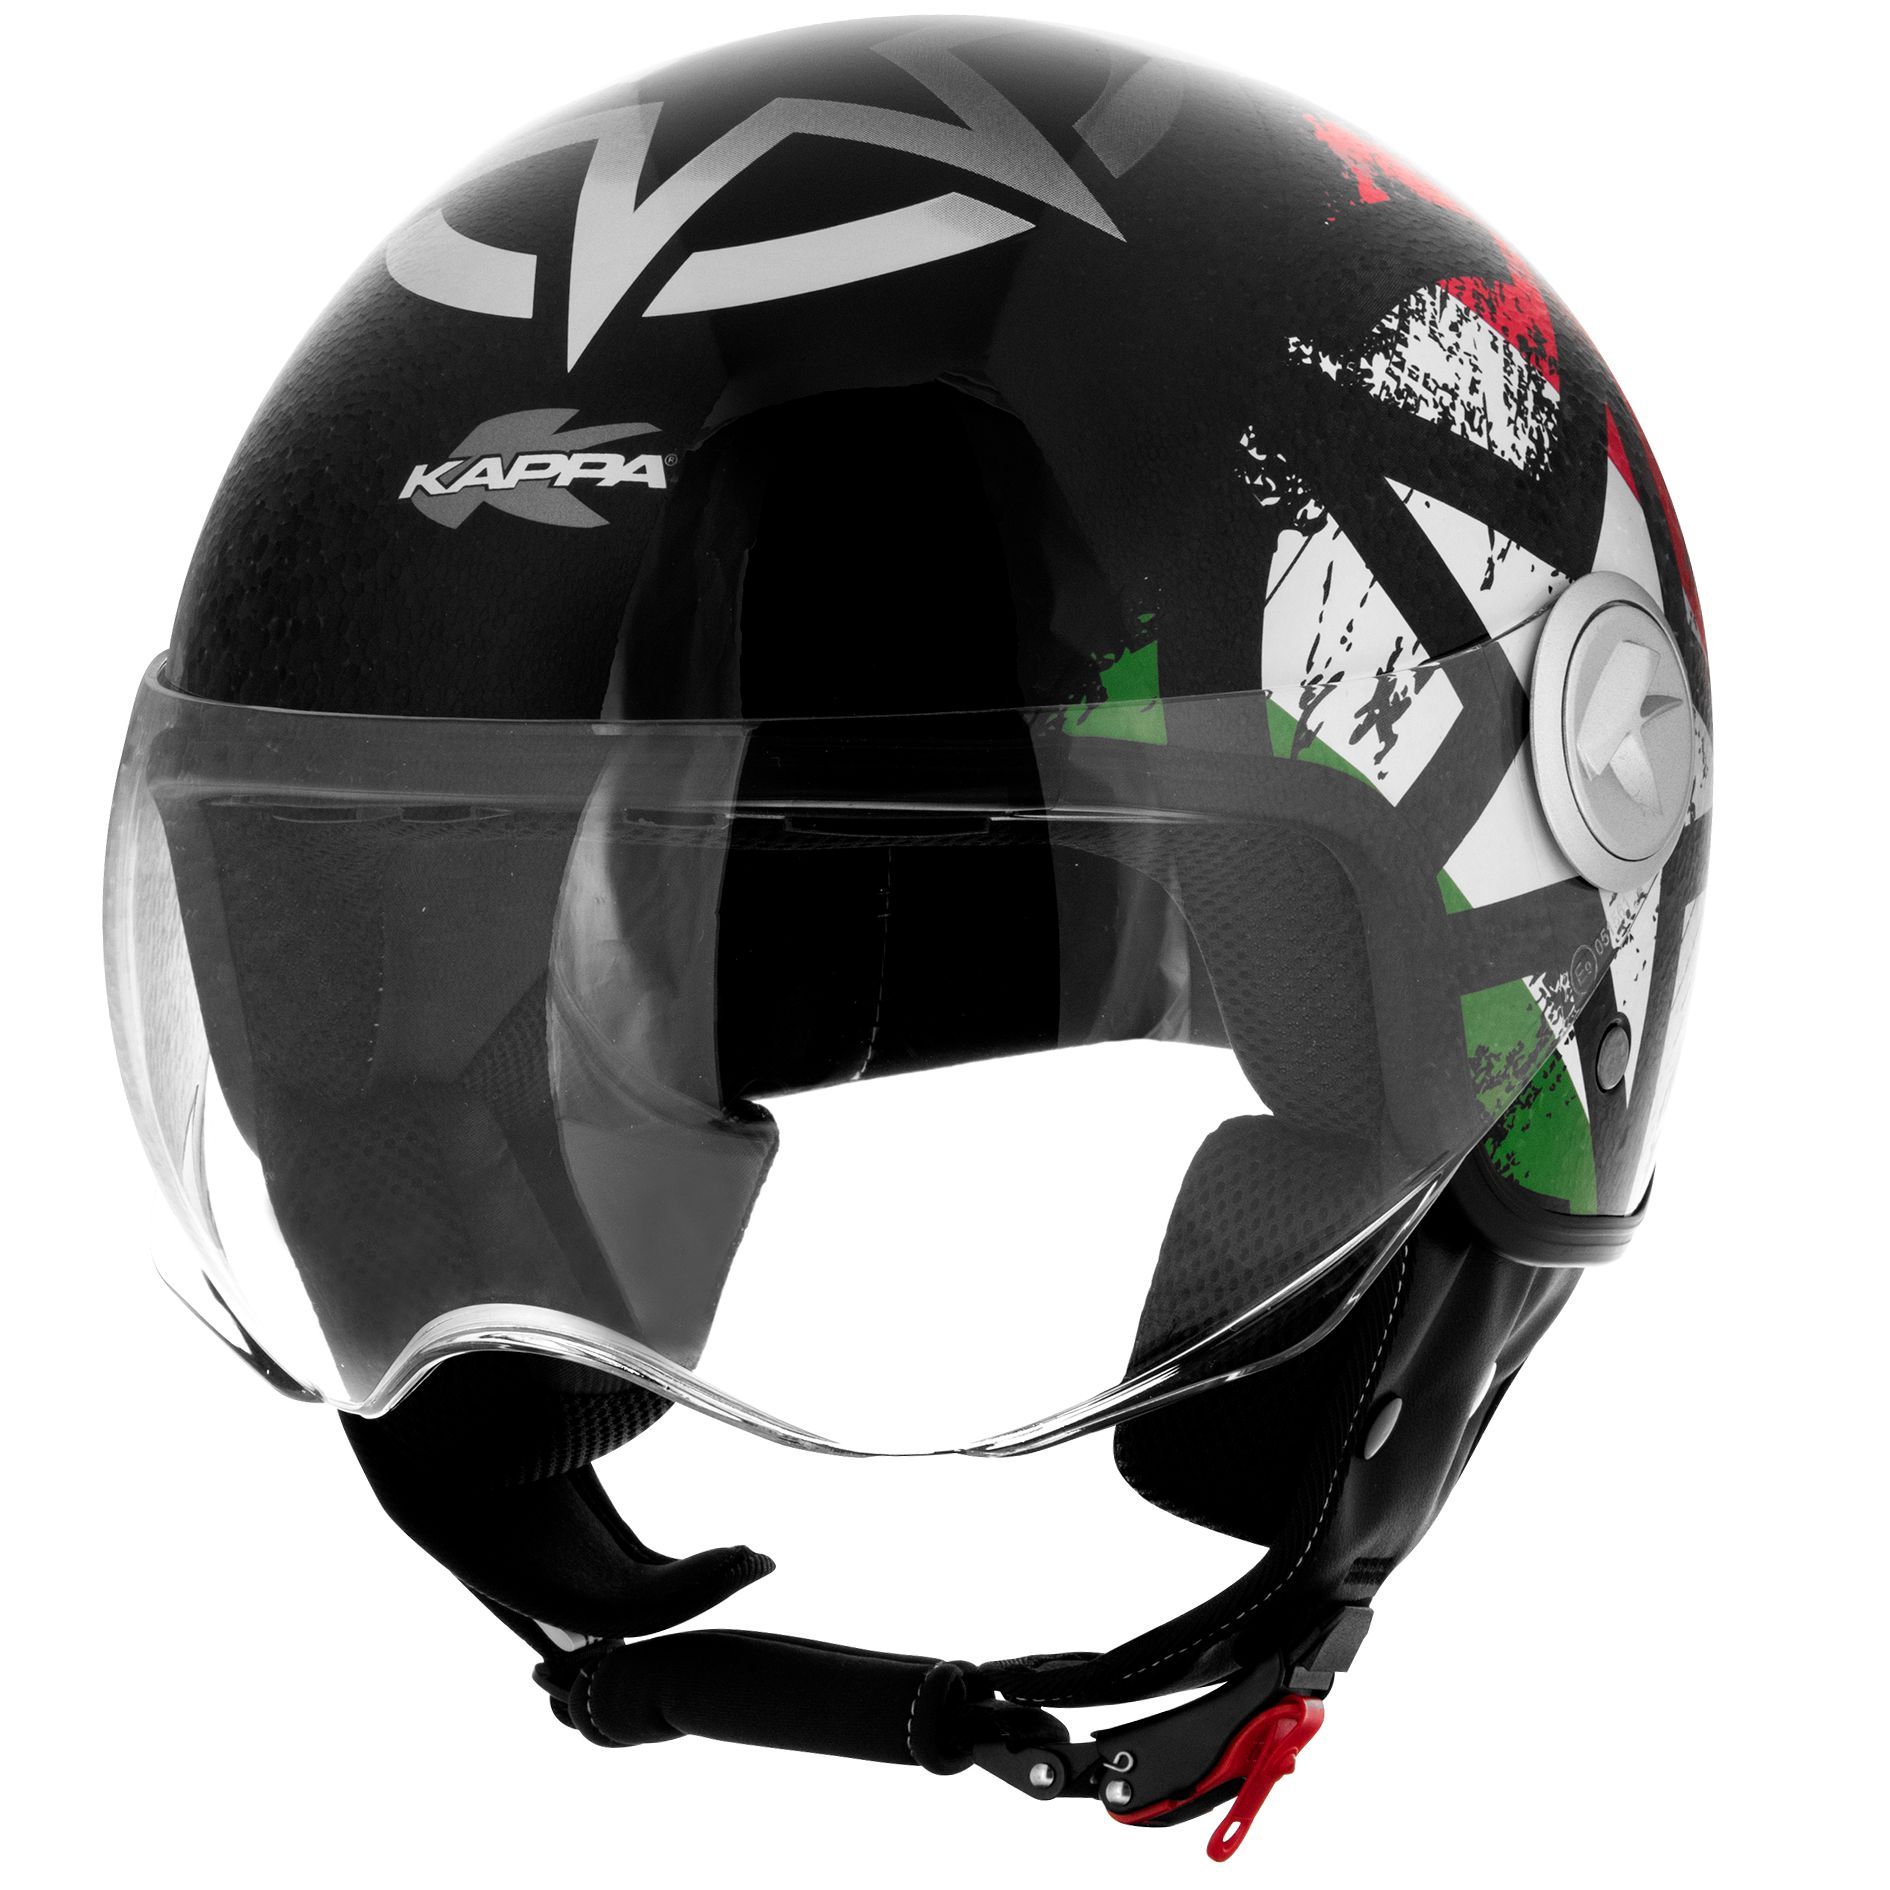 Casque Kappa KV20 RIO GRAPHIC ITALY